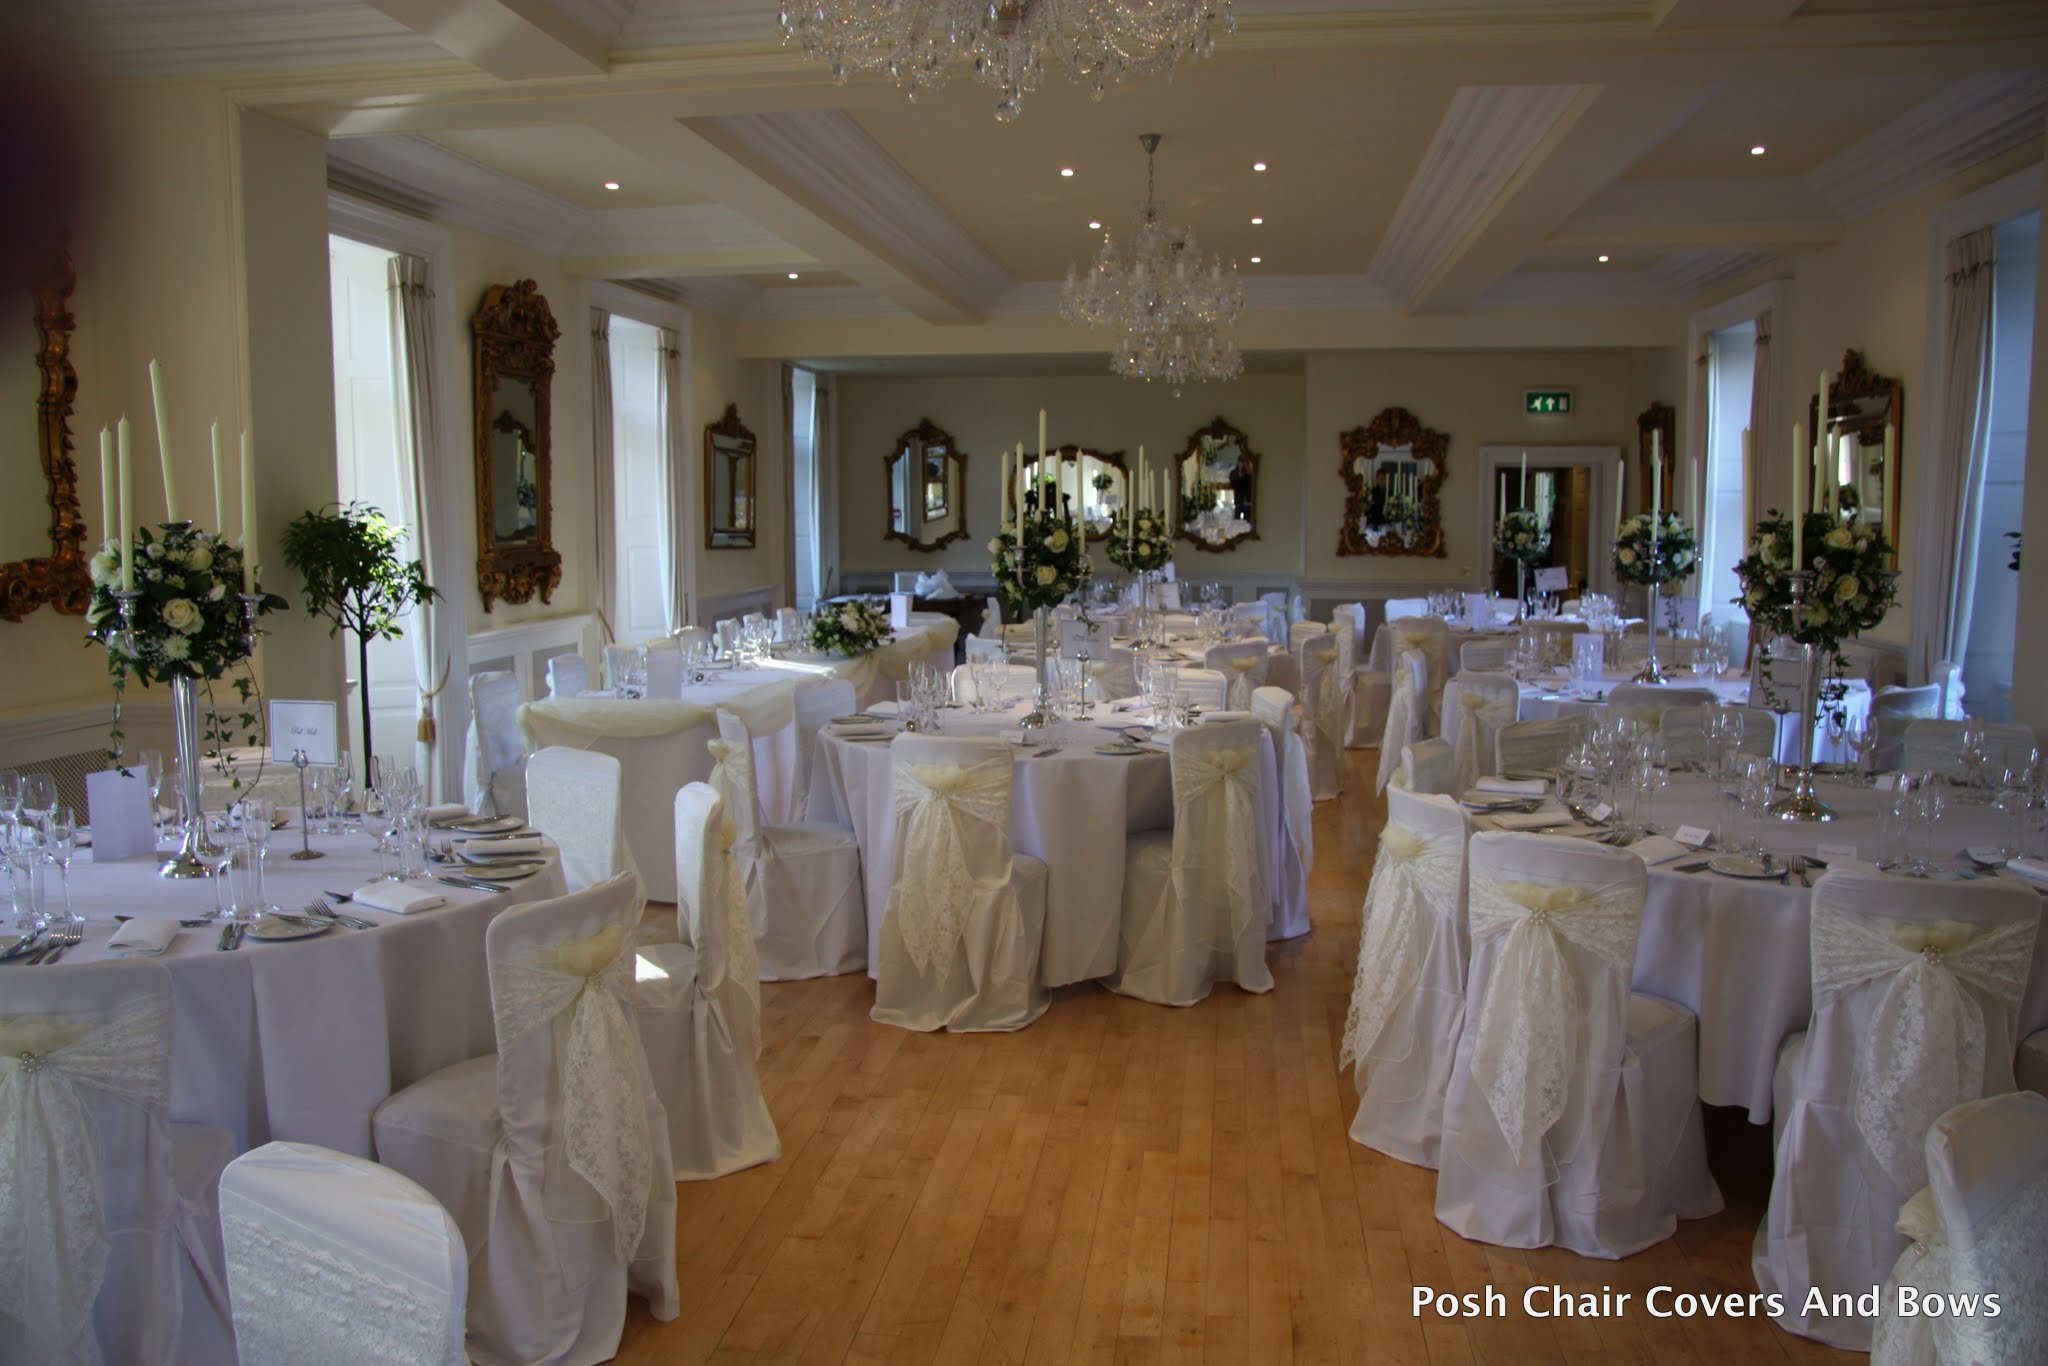 table and chair hire theater platform posh covers & bows | chiavari chairs |flower wall|hire|centrepieces|thrones|chair